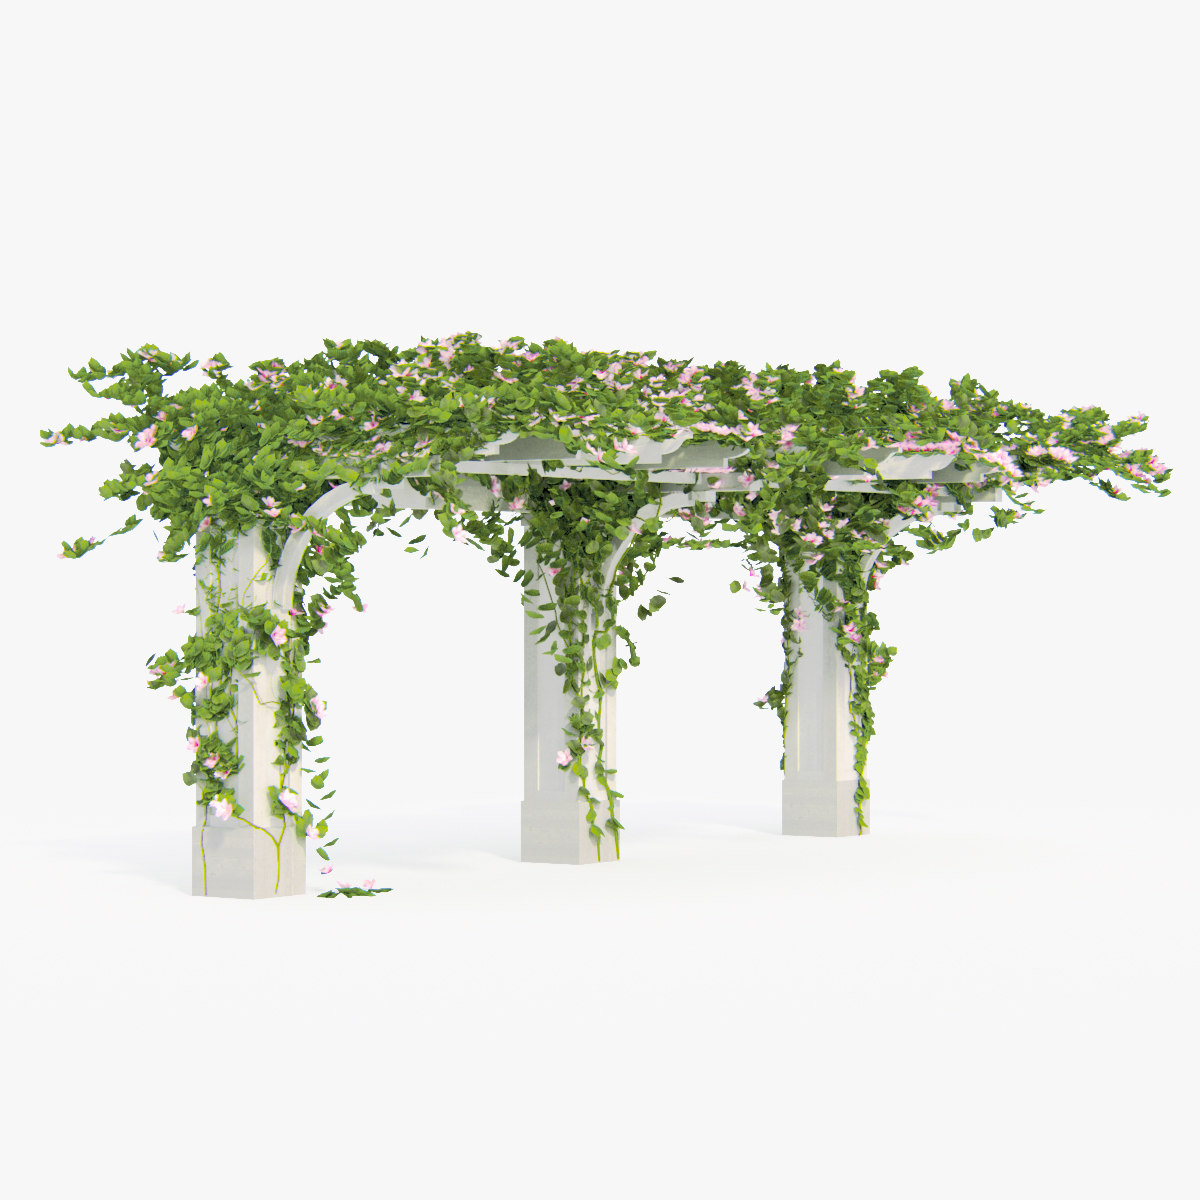 Pergola_With_Flowers_Ivy_00079.jpg